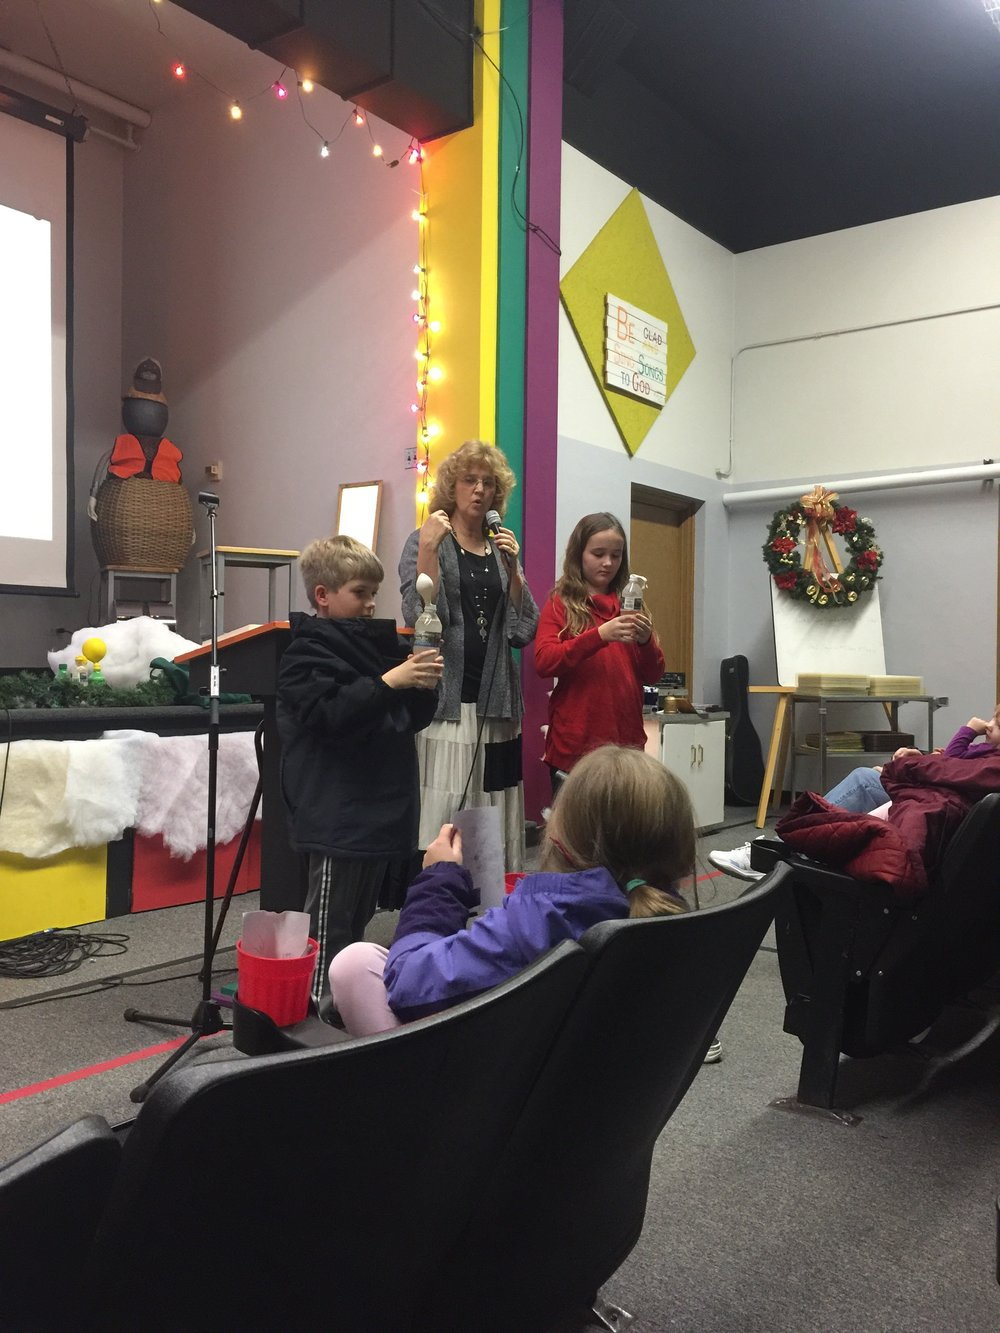 We had kids dump yeast into water and watched to see what happened. Only one balloon started to inflate. That was because it had sugar in it, to help activate the yeast. But the balloon was slow to inflate. This related to the Feast of Unleavened Bread and how the Israelites had to leave the land in a hurry.